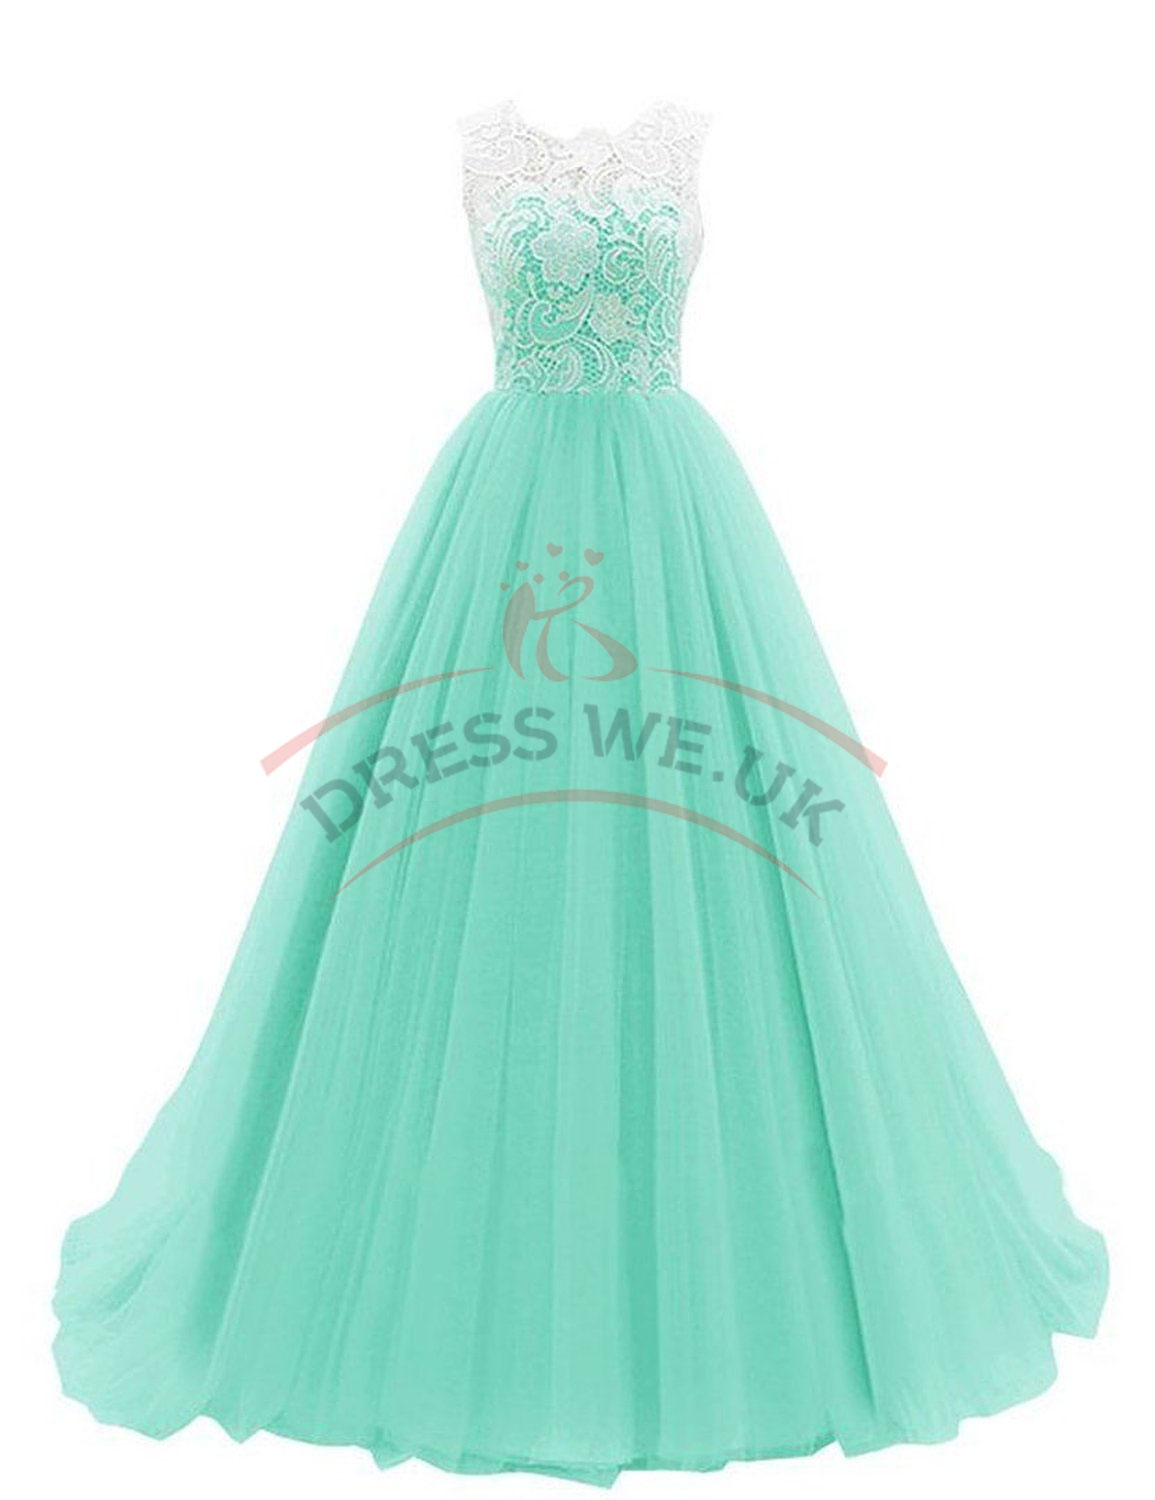 Elegant Mint Prom Dresses,Ruched Lace Prom Dresses,Sleeveless Prom ...